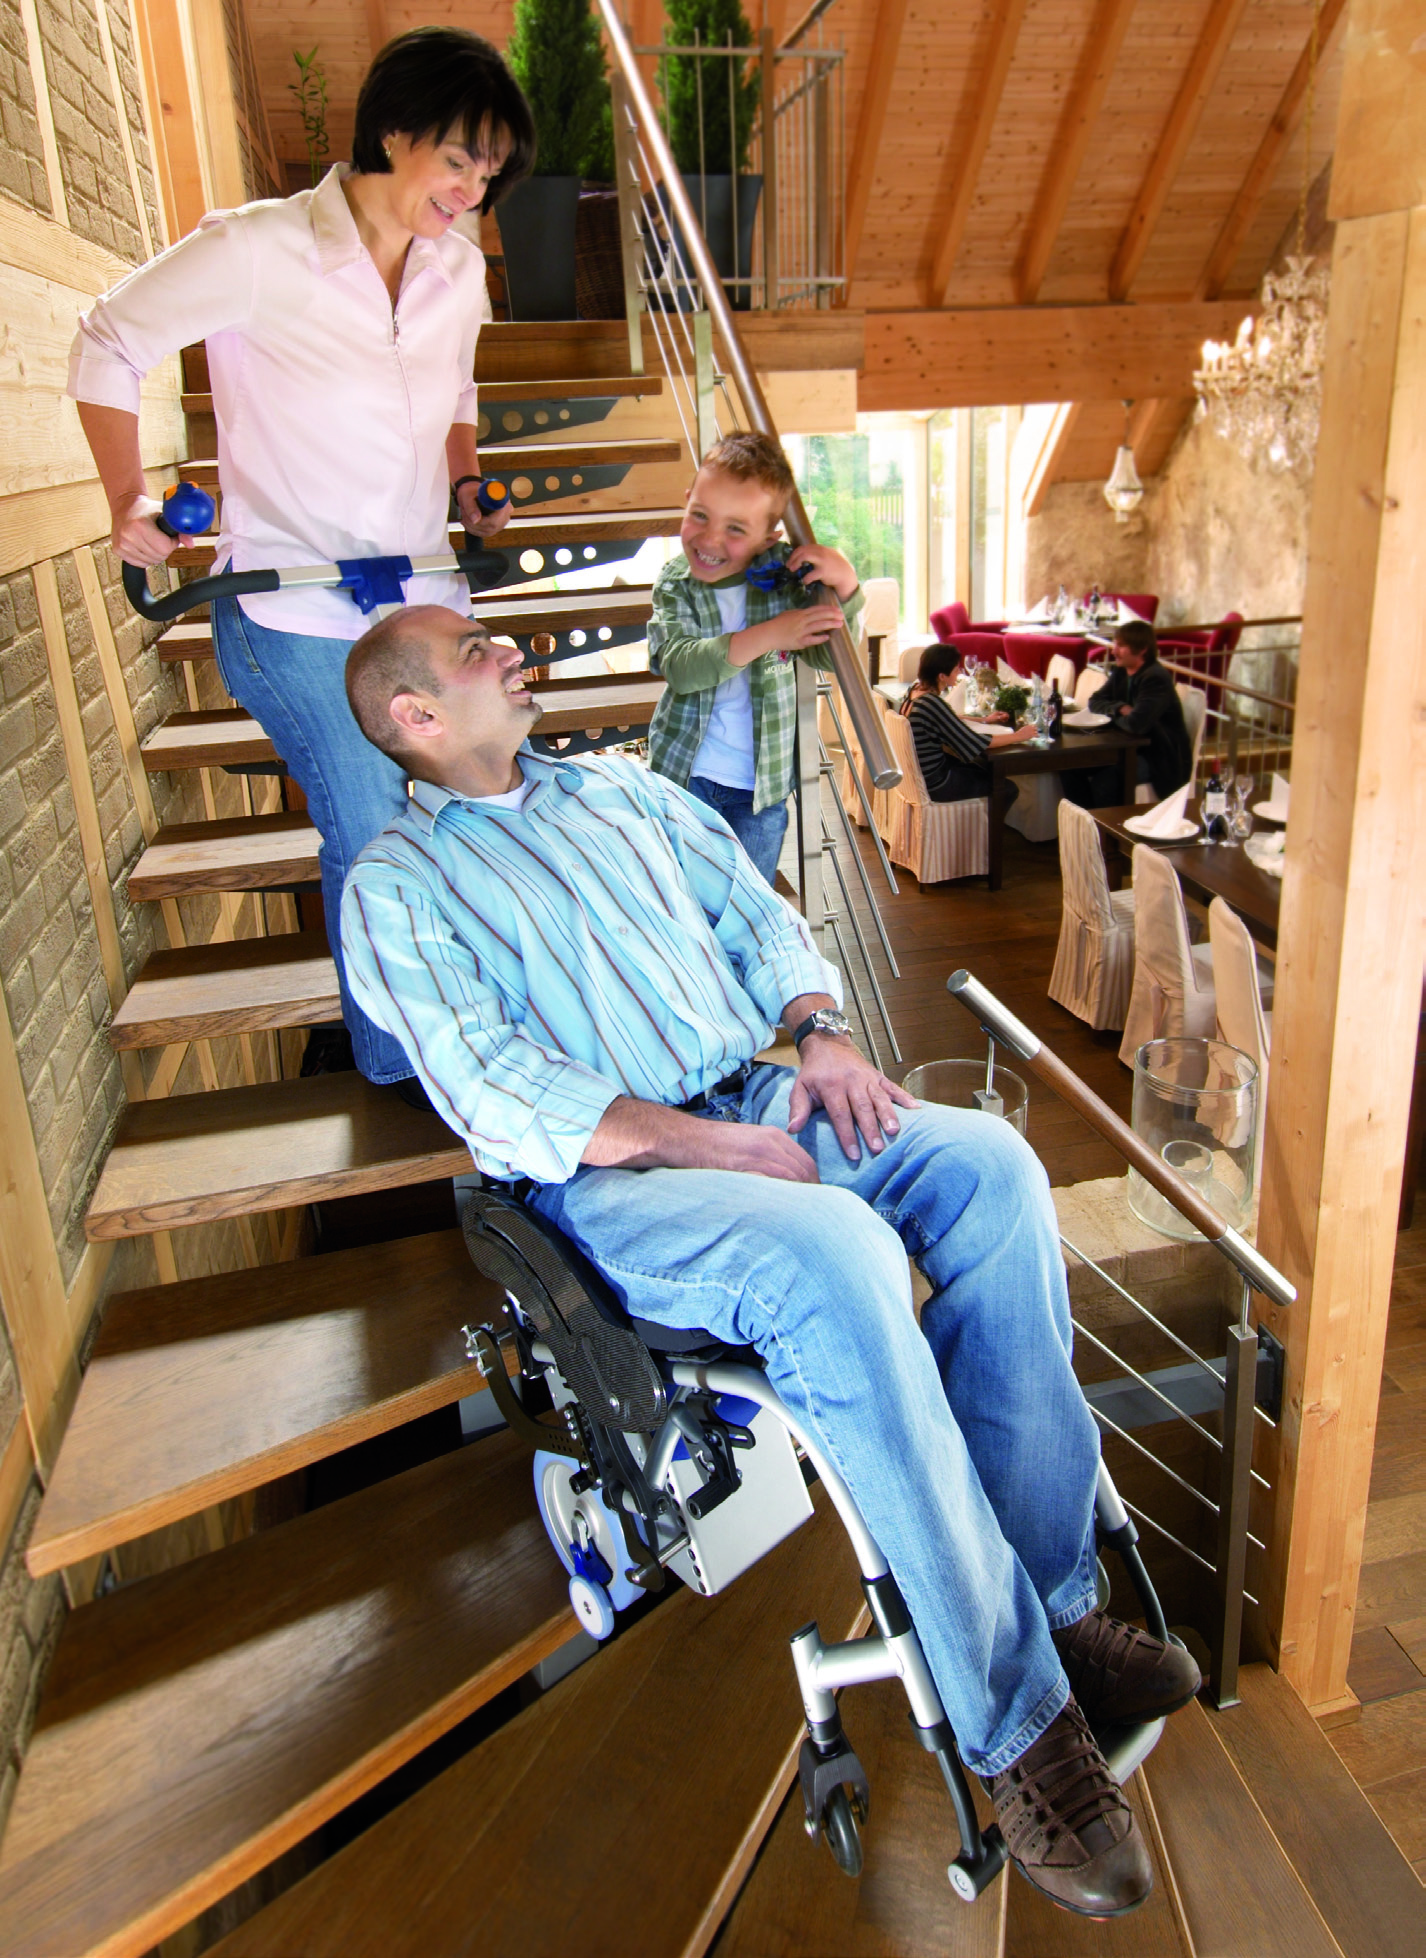 image of S-Max stair climber in use